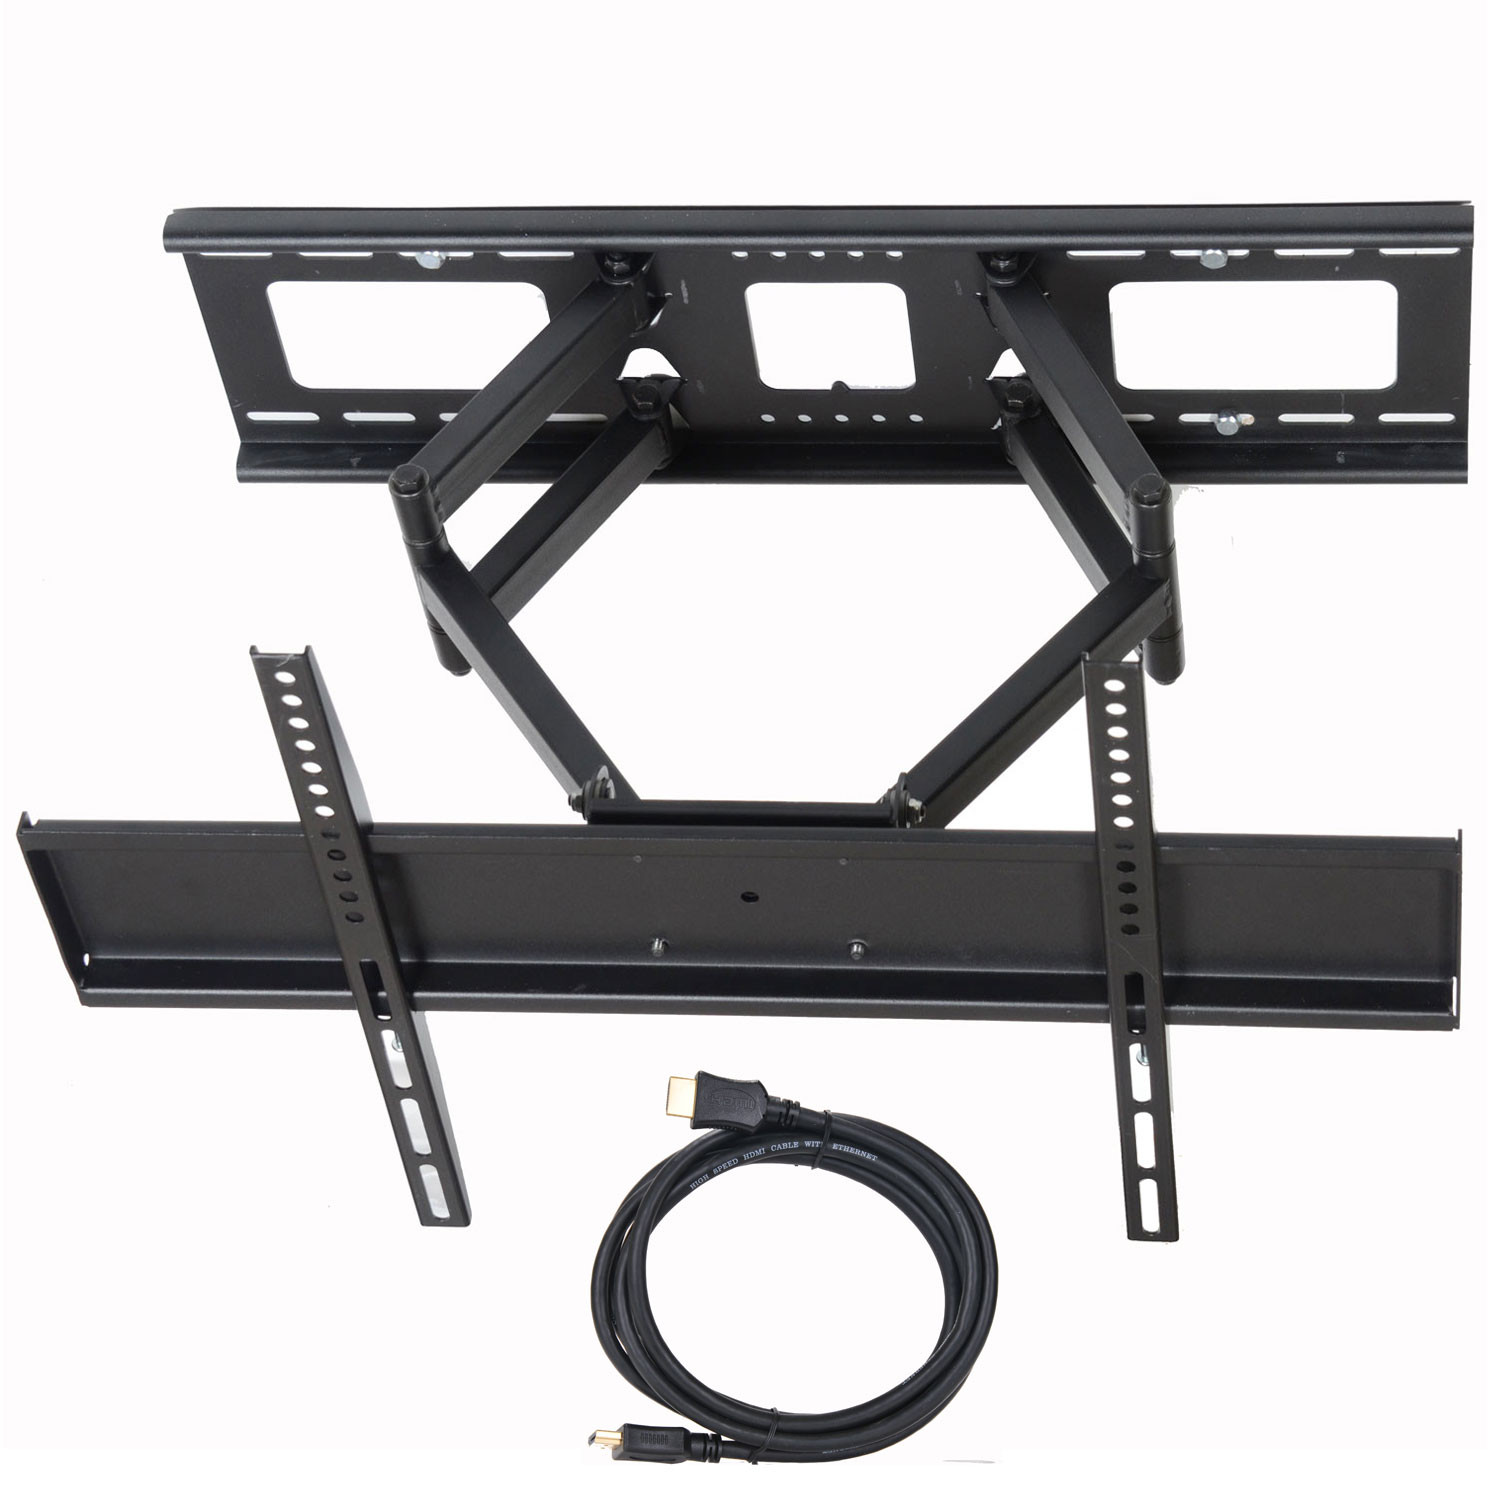 "VideoSecu Tilt Swivel Full Motion TV Wall Mount Dual Arm Bracket for Sony Bravia 32 39 40 42 43 46 49 50 55 60"" LED LCD Plasma XBR-49X800E XBR-49X900E XBR-55A1E XBR-55X800E XBR-55X900E XBR-55X930D BK7"